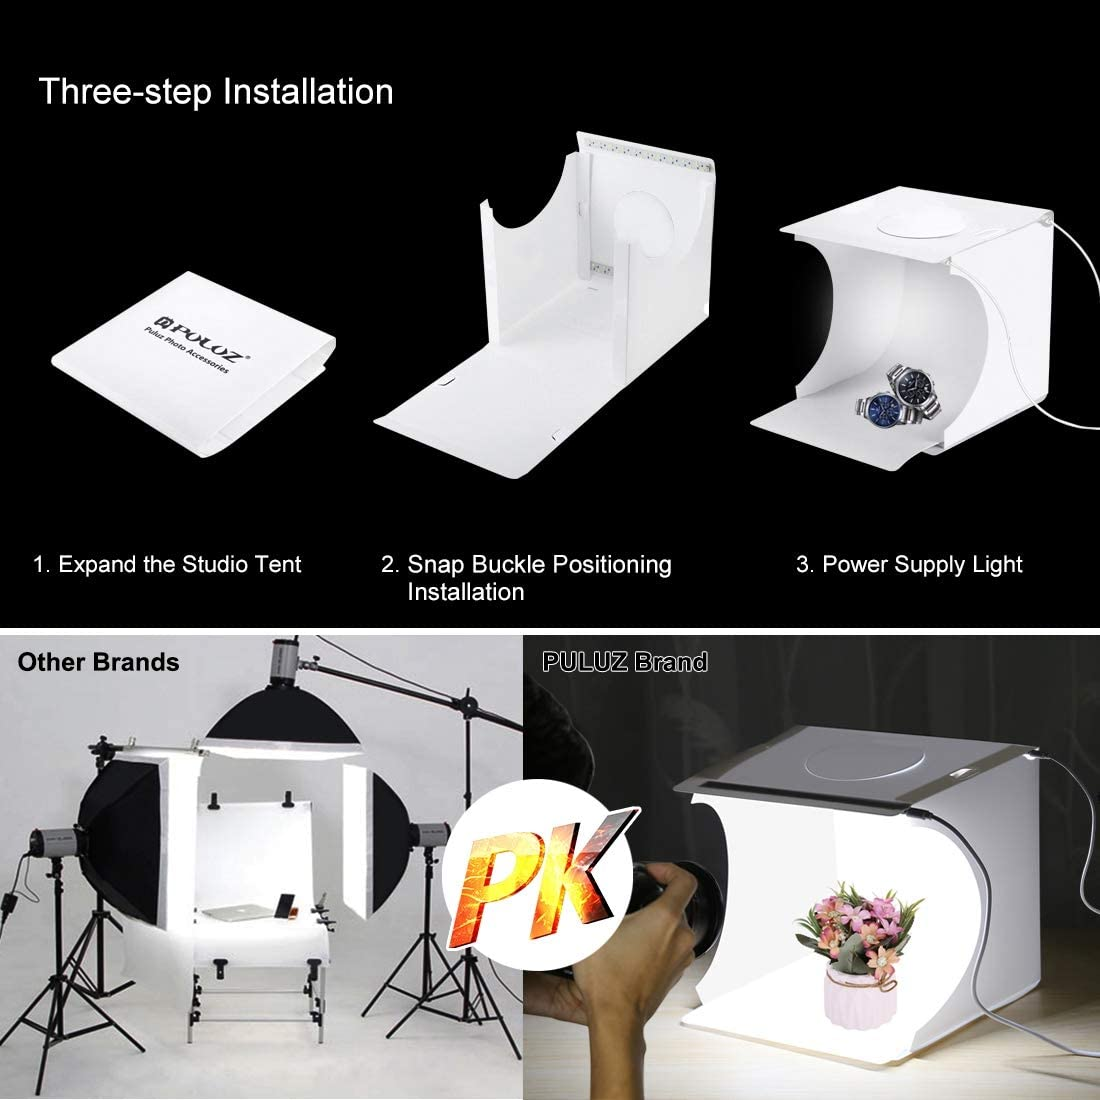 Adjustable Portable Photography Shooting Light Tent Kit with White//Warm//Soft Lighting 6 Backdrops for Jewellery and Small Items PULUZ 20cm Ring Light Photo Studio Light Box